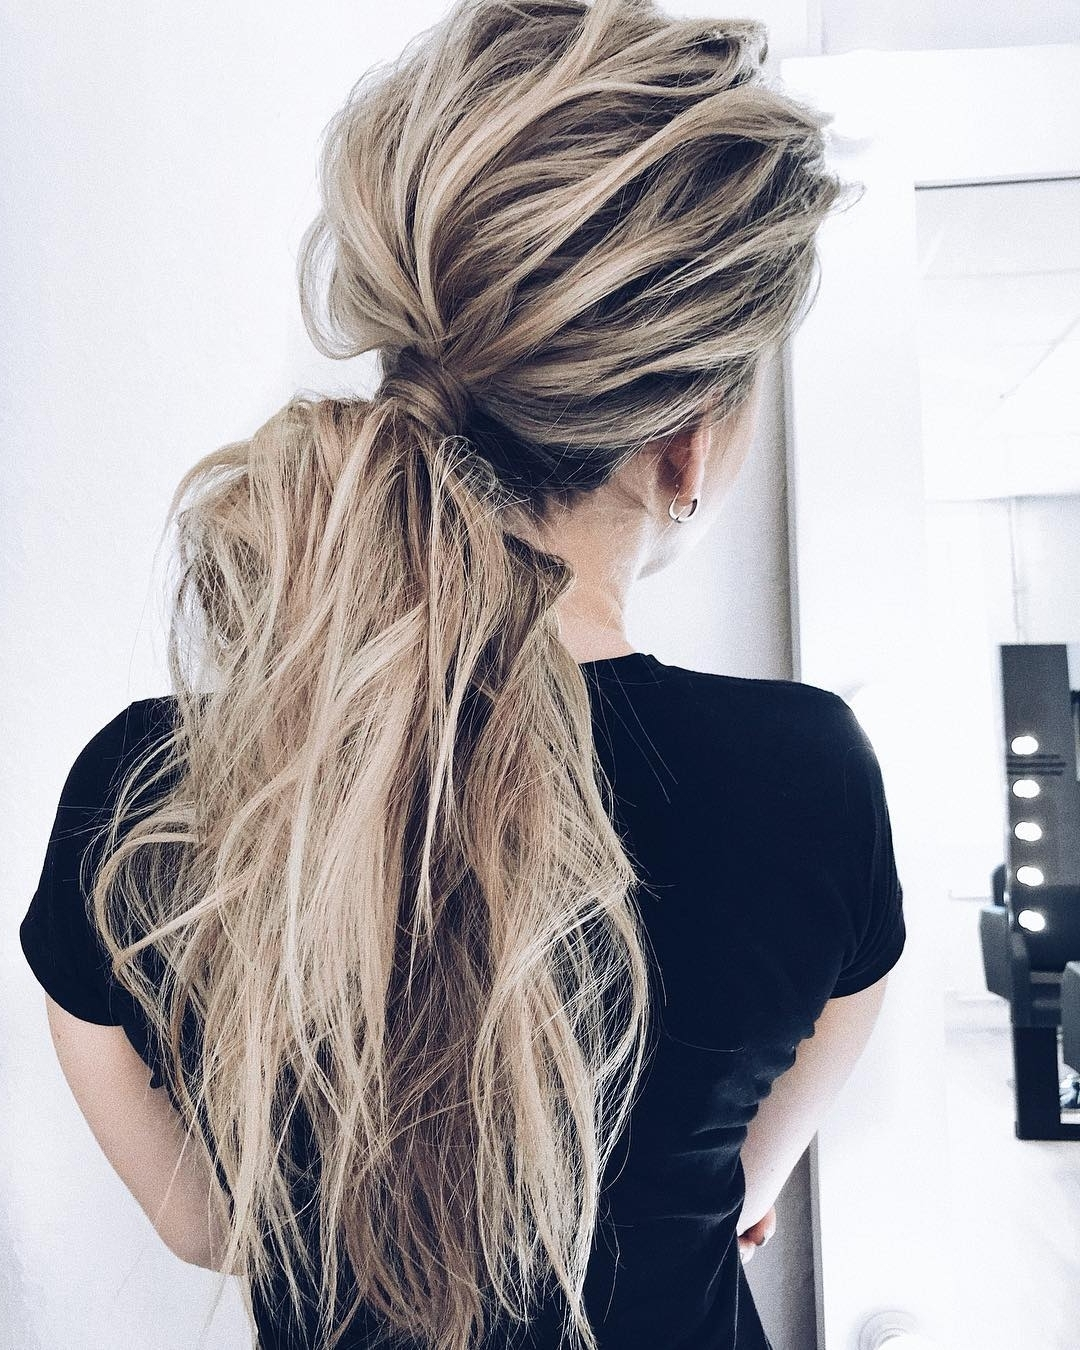 10 Creative Ponytail Hairstyles For Long Hair, Summer Hairstyle Within Most Up To Date Long Classic Ponytail Hairstyles (View 1 of 20)